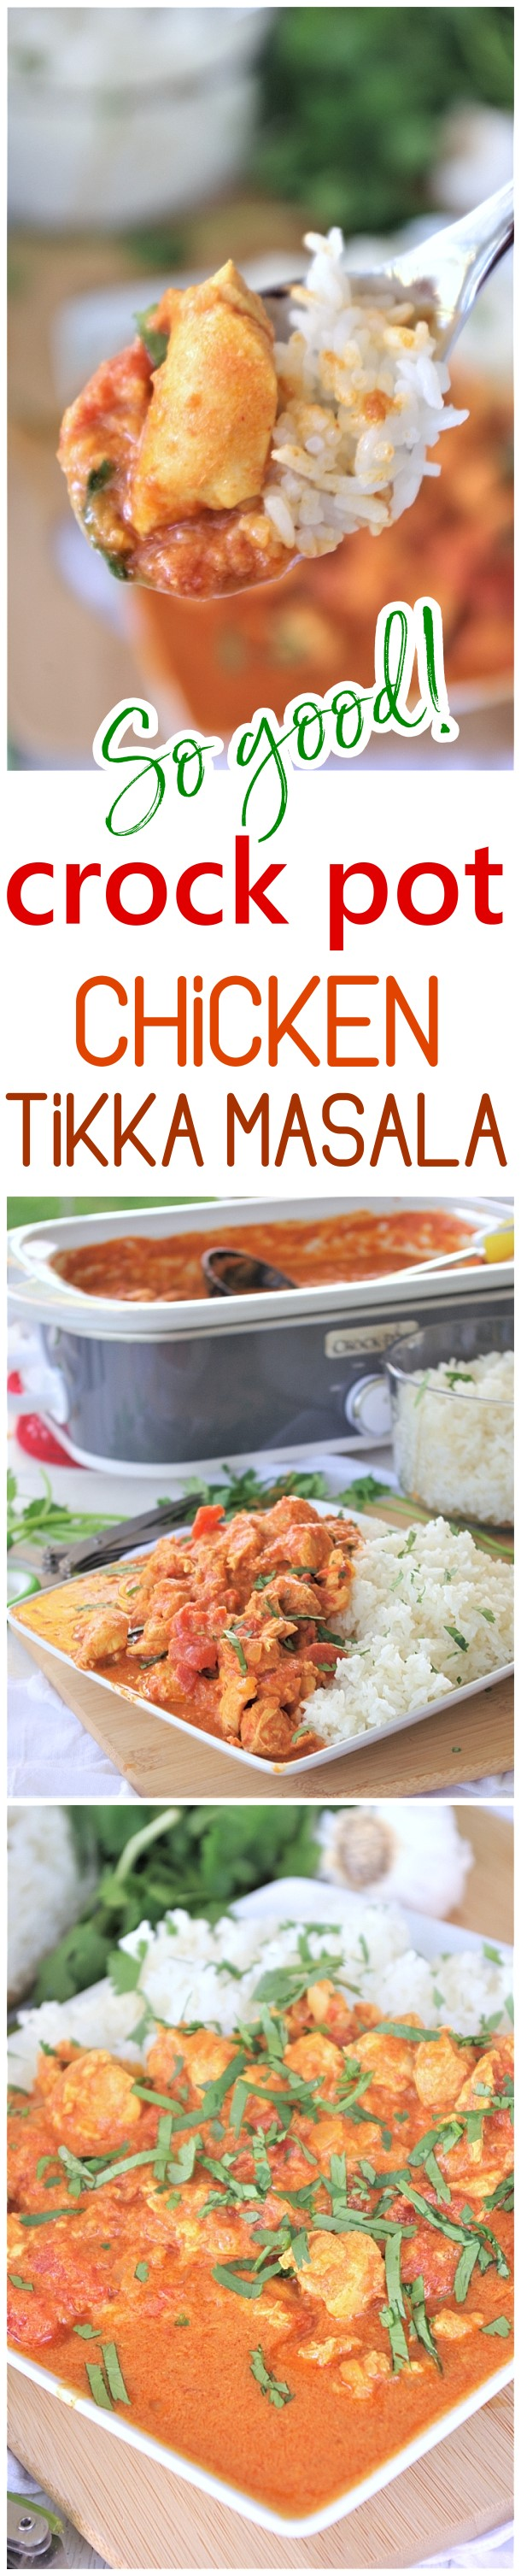 Crock Pot Chicken Tikka Masala Easy Family Supper Recipe by Dreaming in DIY - This easy family style slow cooker recipe for chicken tikka masala is going to become your new go-to and standby supper for busy weeknights and lazy weekends.  It's just so buttery and full of melt in your mouth Indian inspired deliciousness.